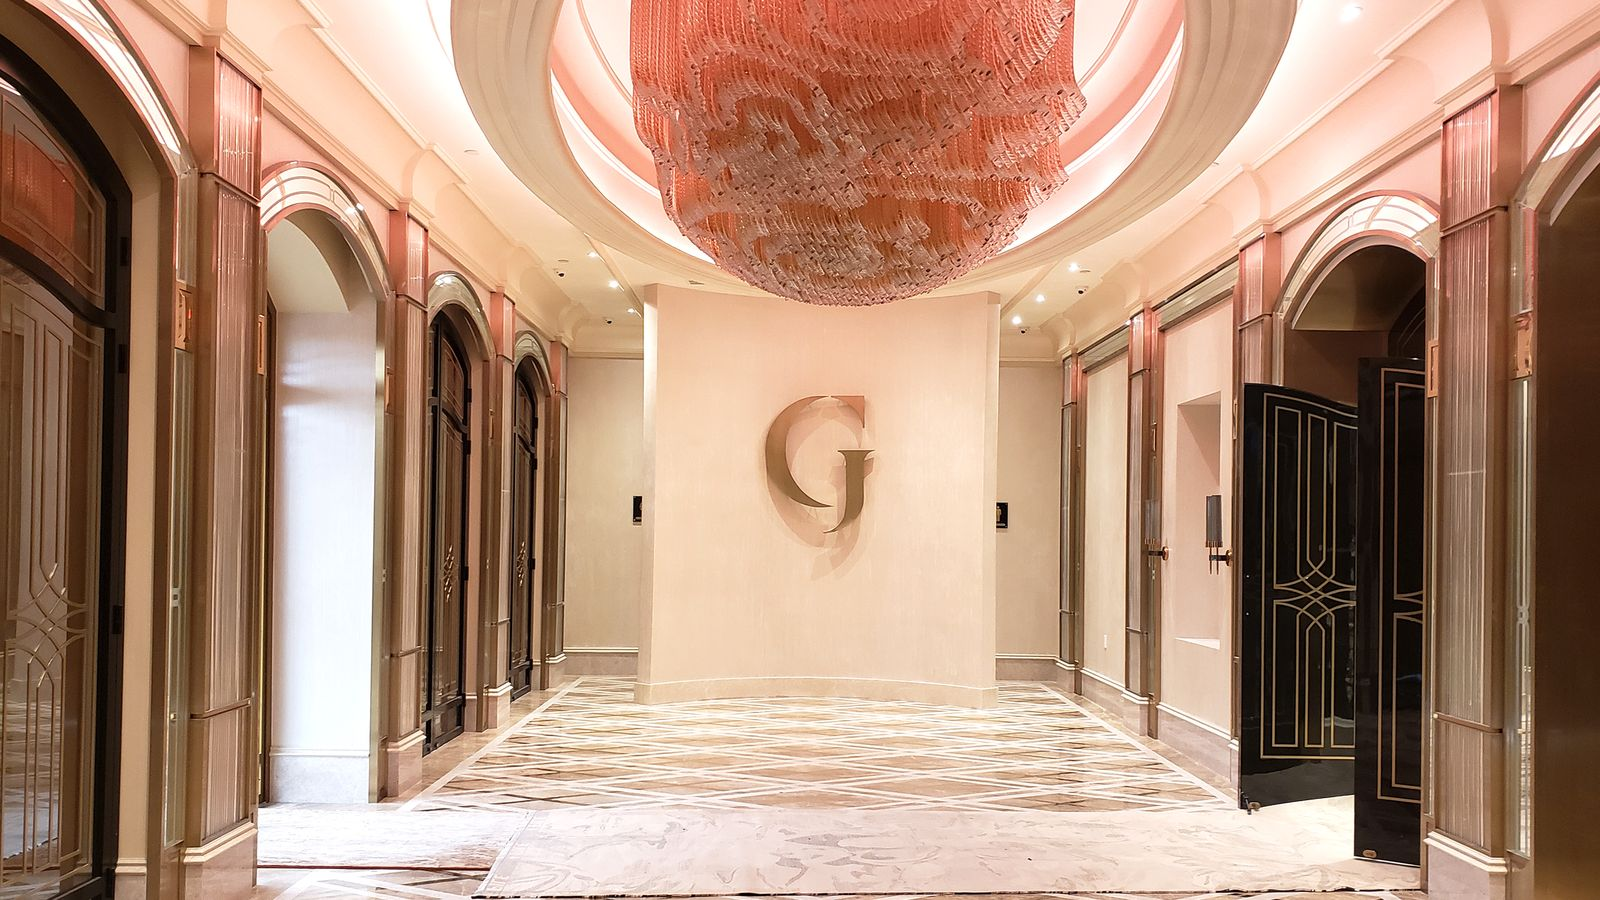 Grand Venue interior logo signage displaying the letter G made of aluminum for branding